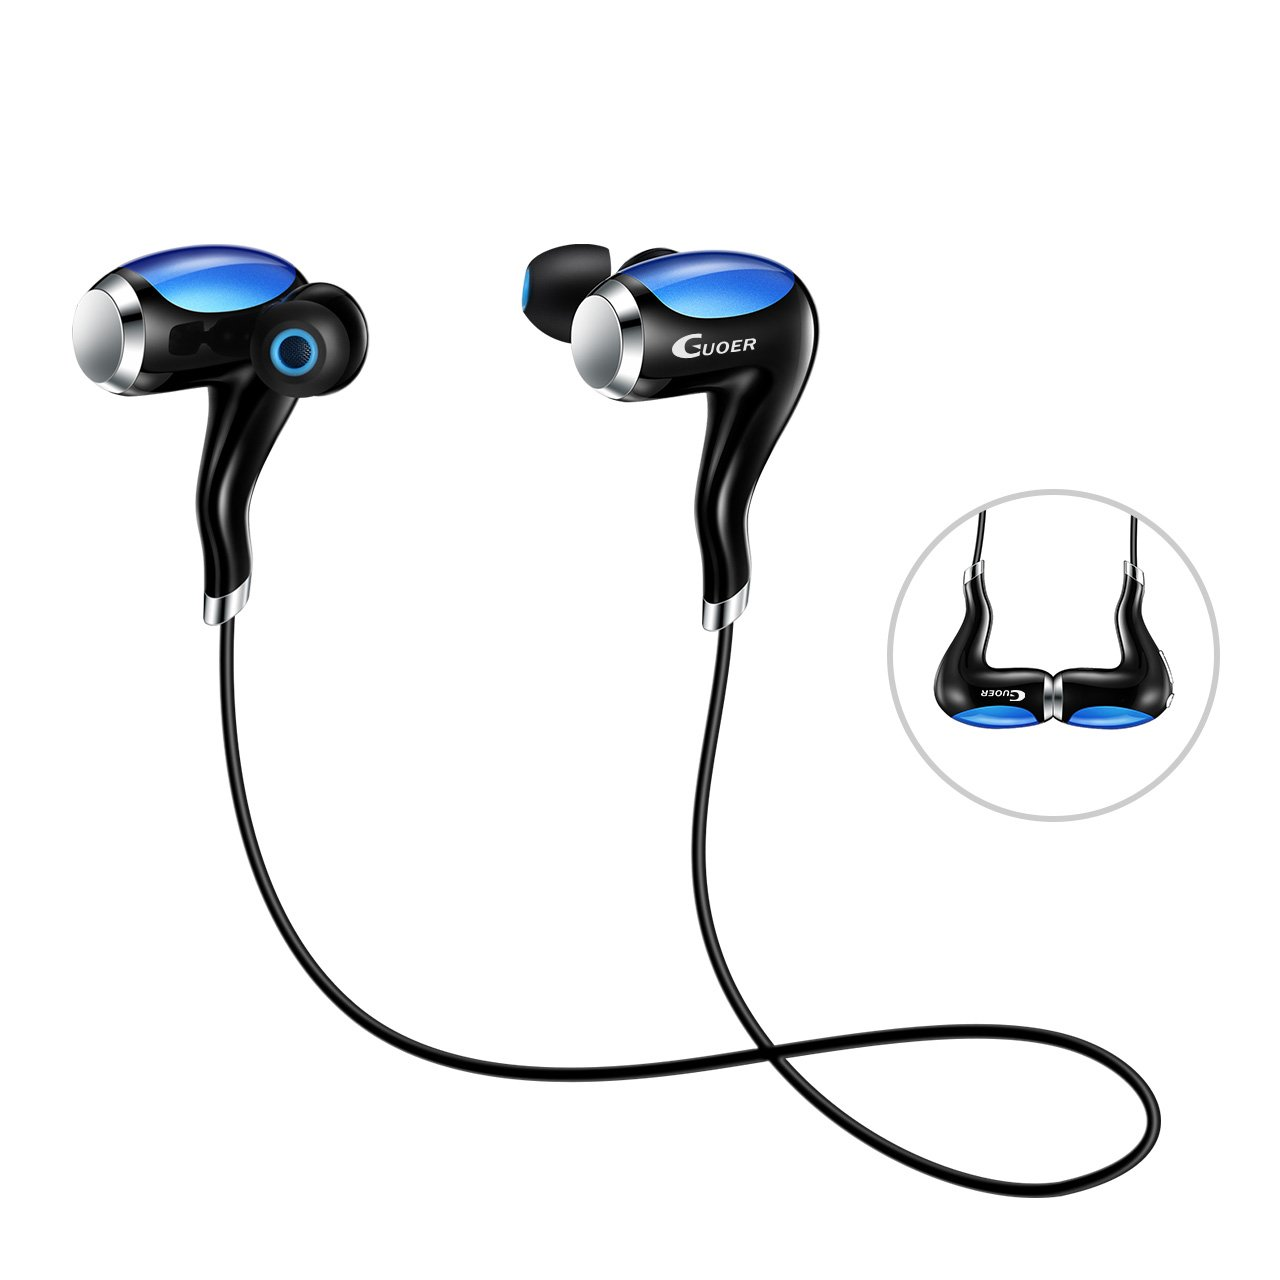 Guoer Bluetooth 4.1 Earphone, Wireless Stereo Headphone with Built-in Microphone, Touch Sensitive Controls for Android Smartphones Secure Fit for Sport(Blue)